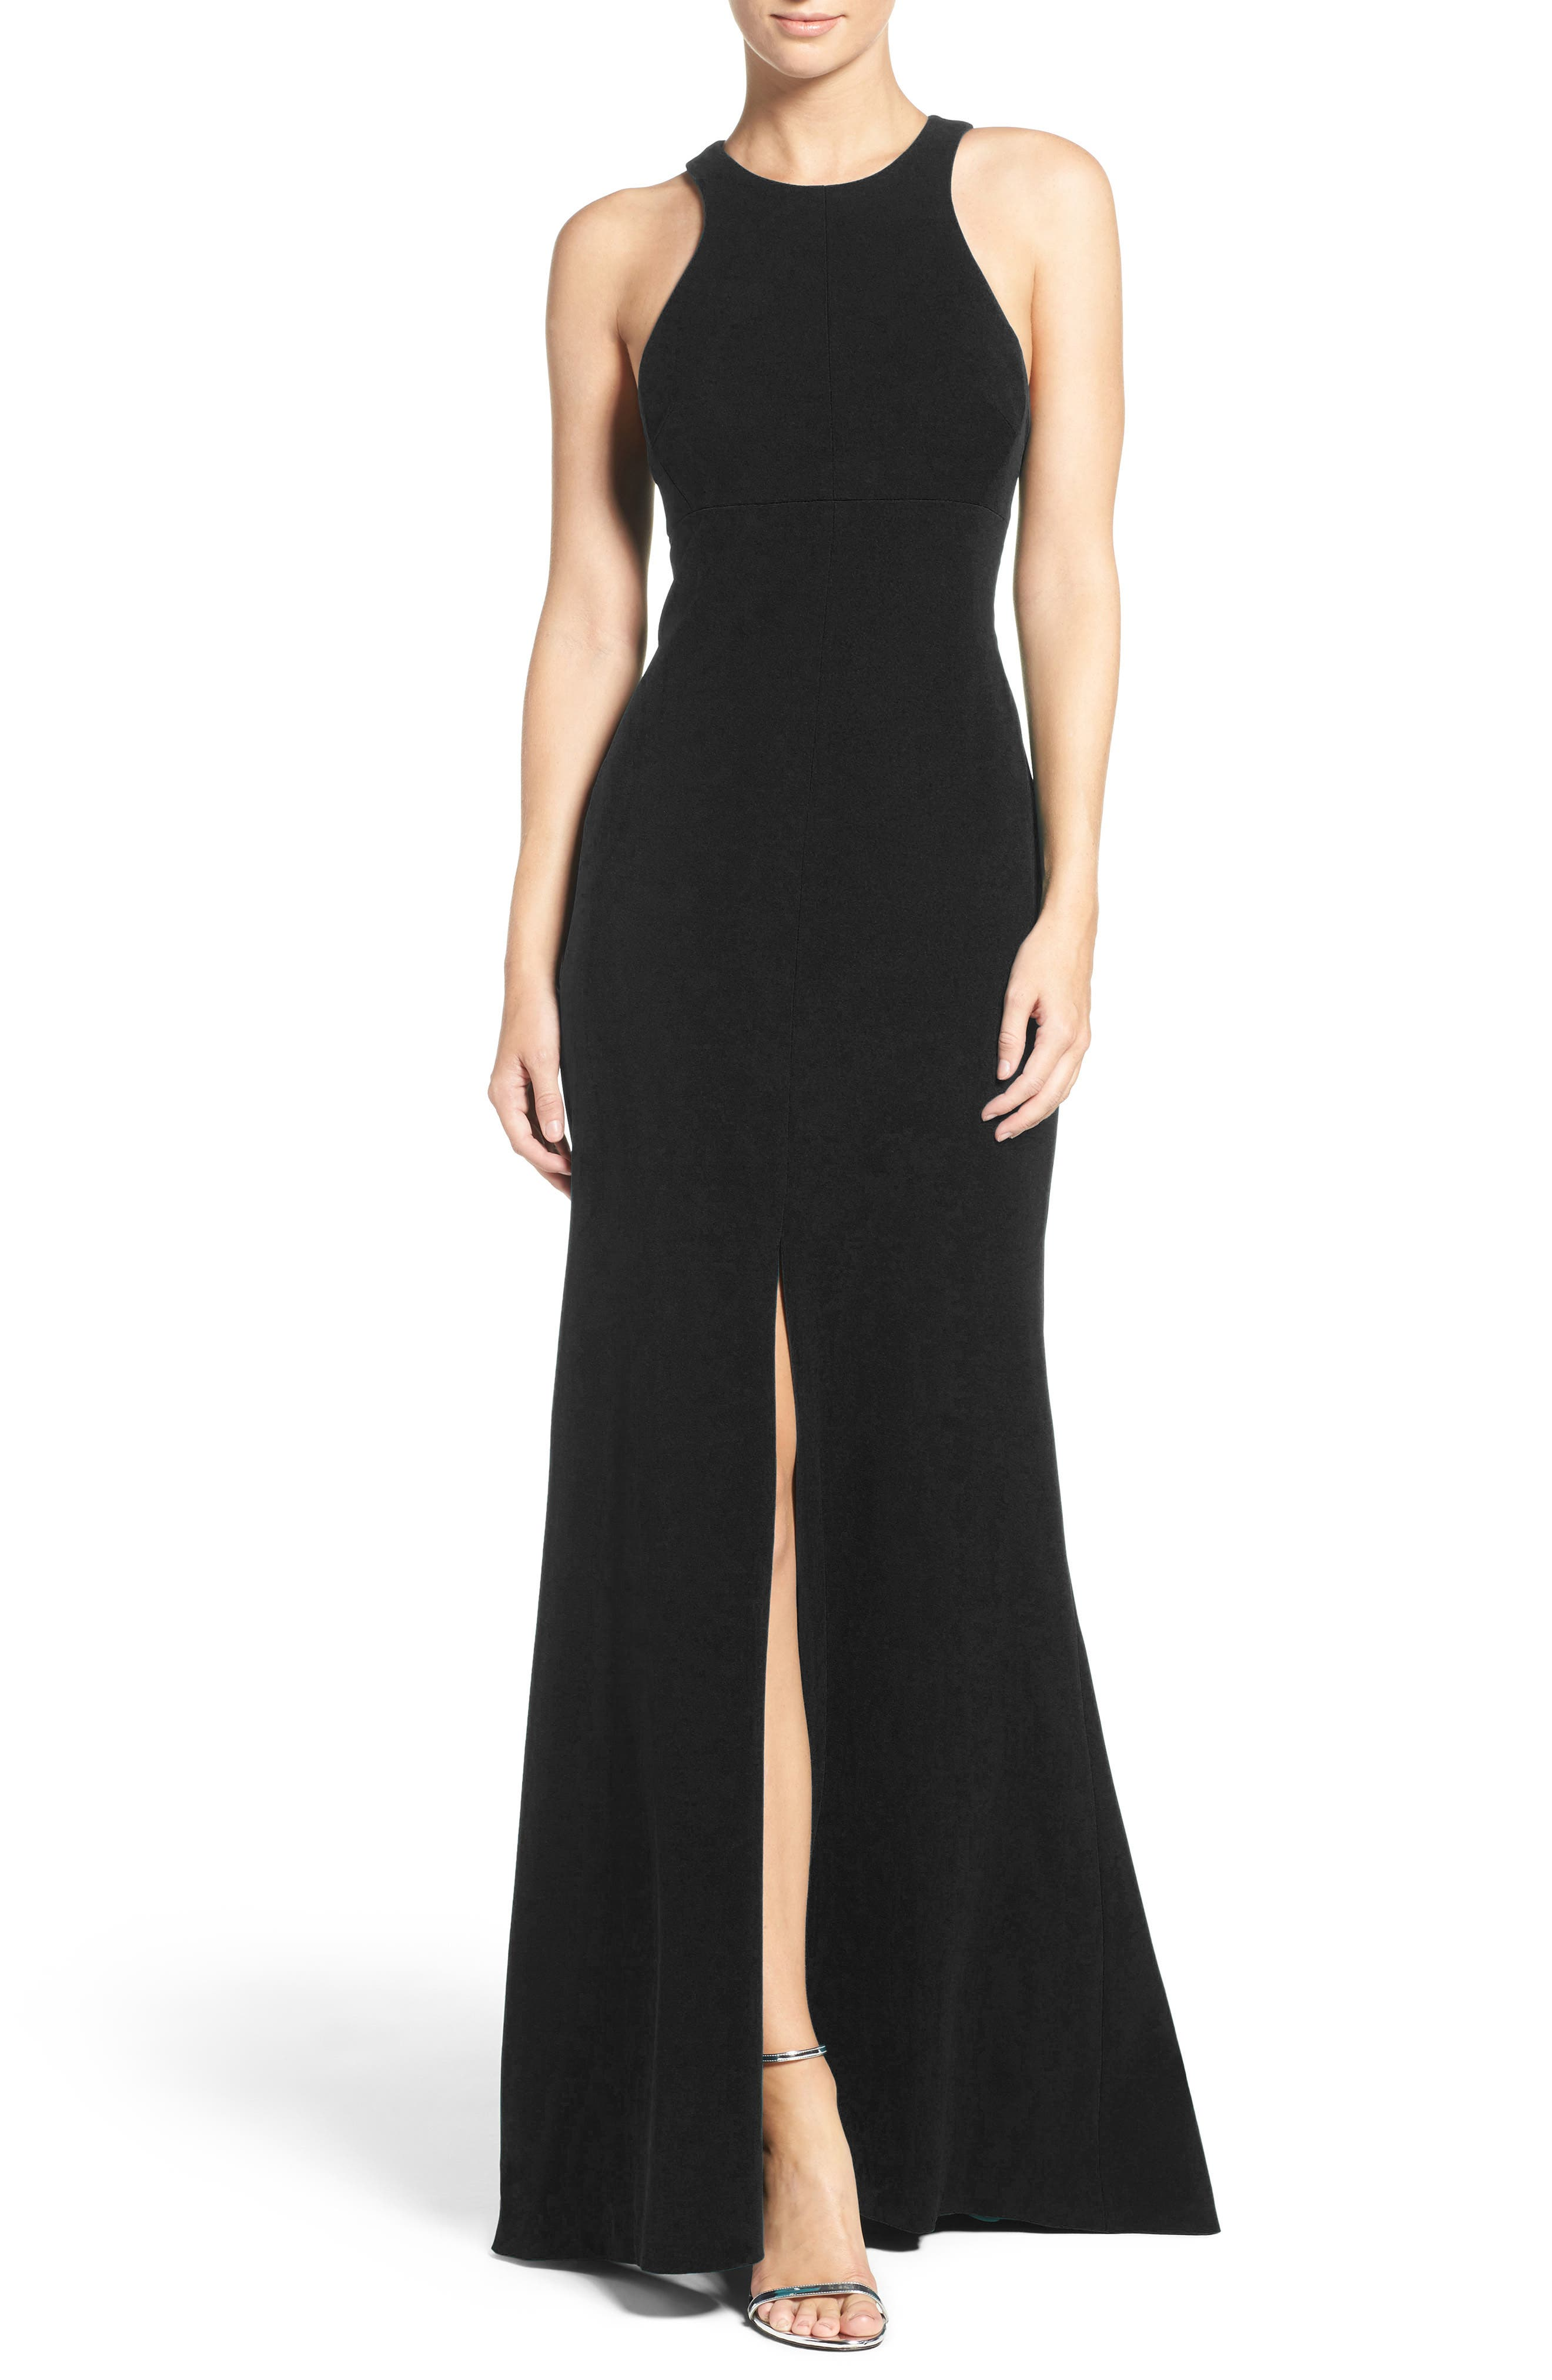 Vera Wang Stretch Woven Mermaid Gown